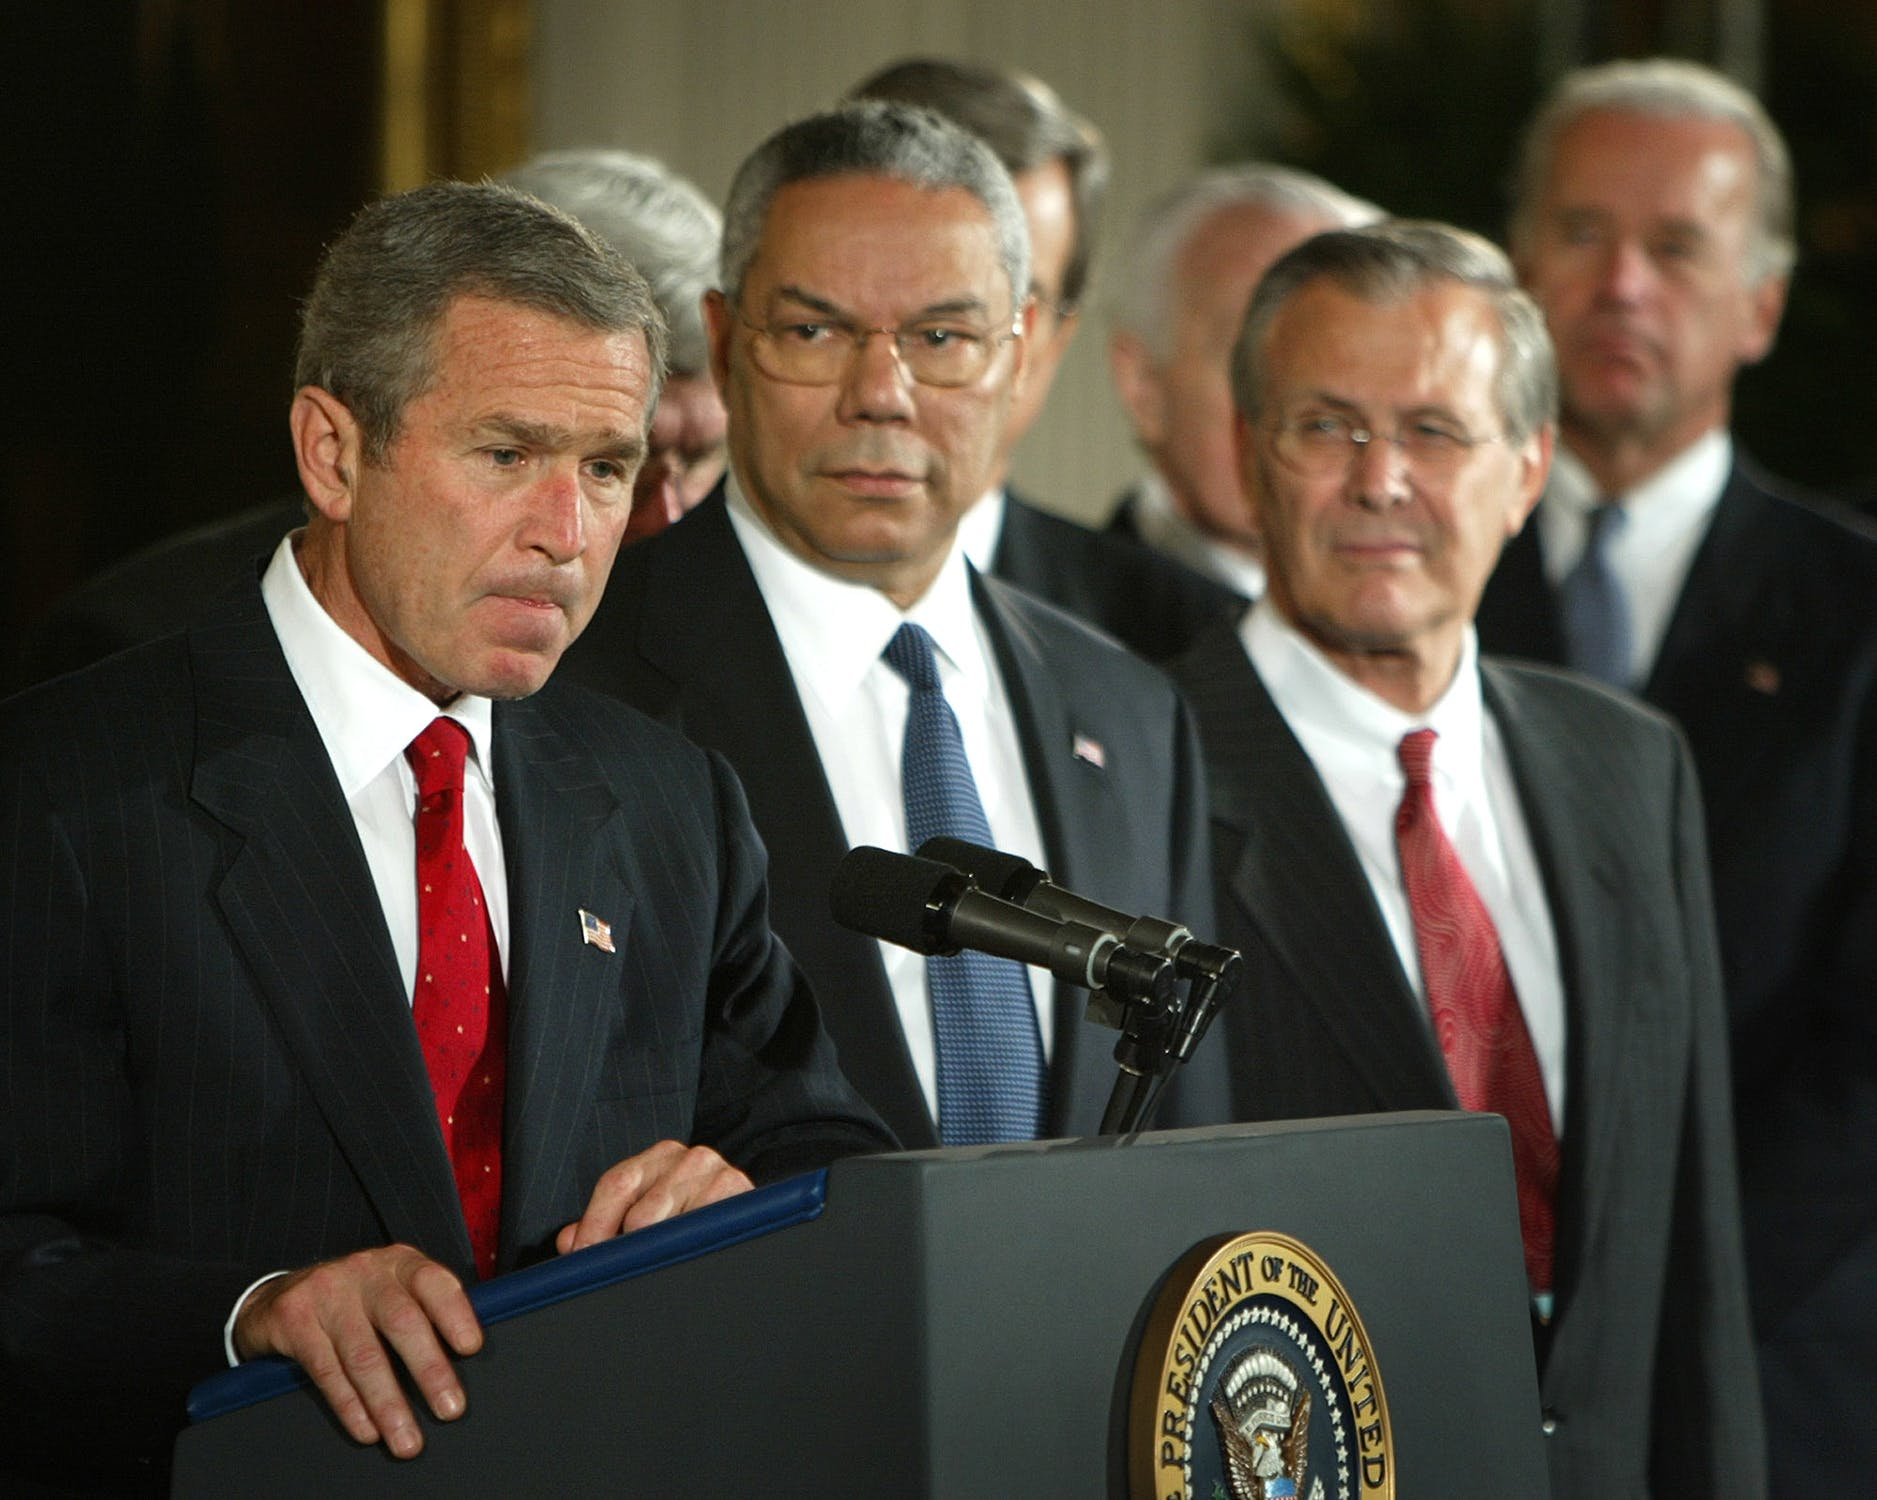 President Bush with Colin Powell and Donald Rumsfeld speak about authorizing the use of force against Iraq